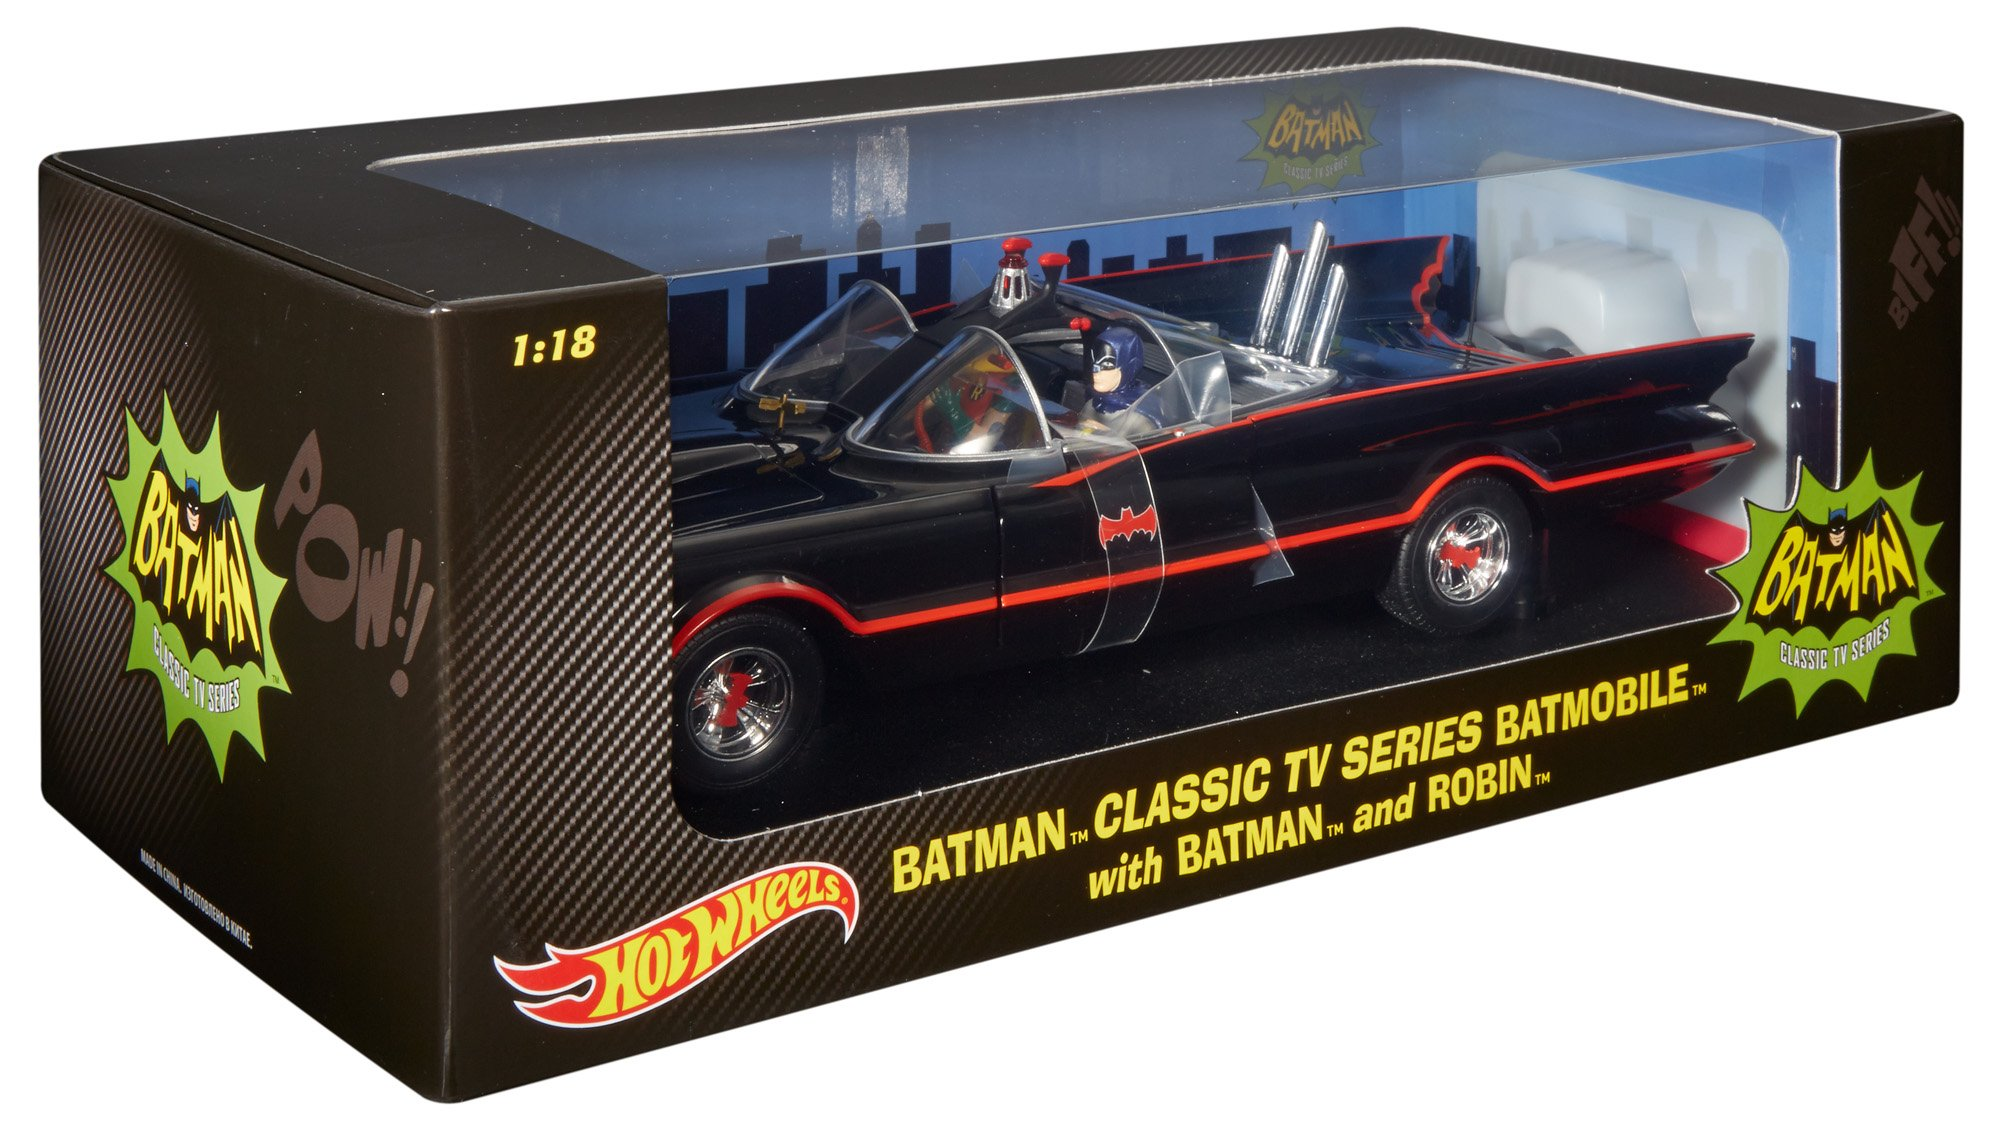 Hot Wheels Collector Batman Classic TV Series Batmobile with Figures Die-cast Vehicle (1:18 Scale) (Discontinued by manufacturer)